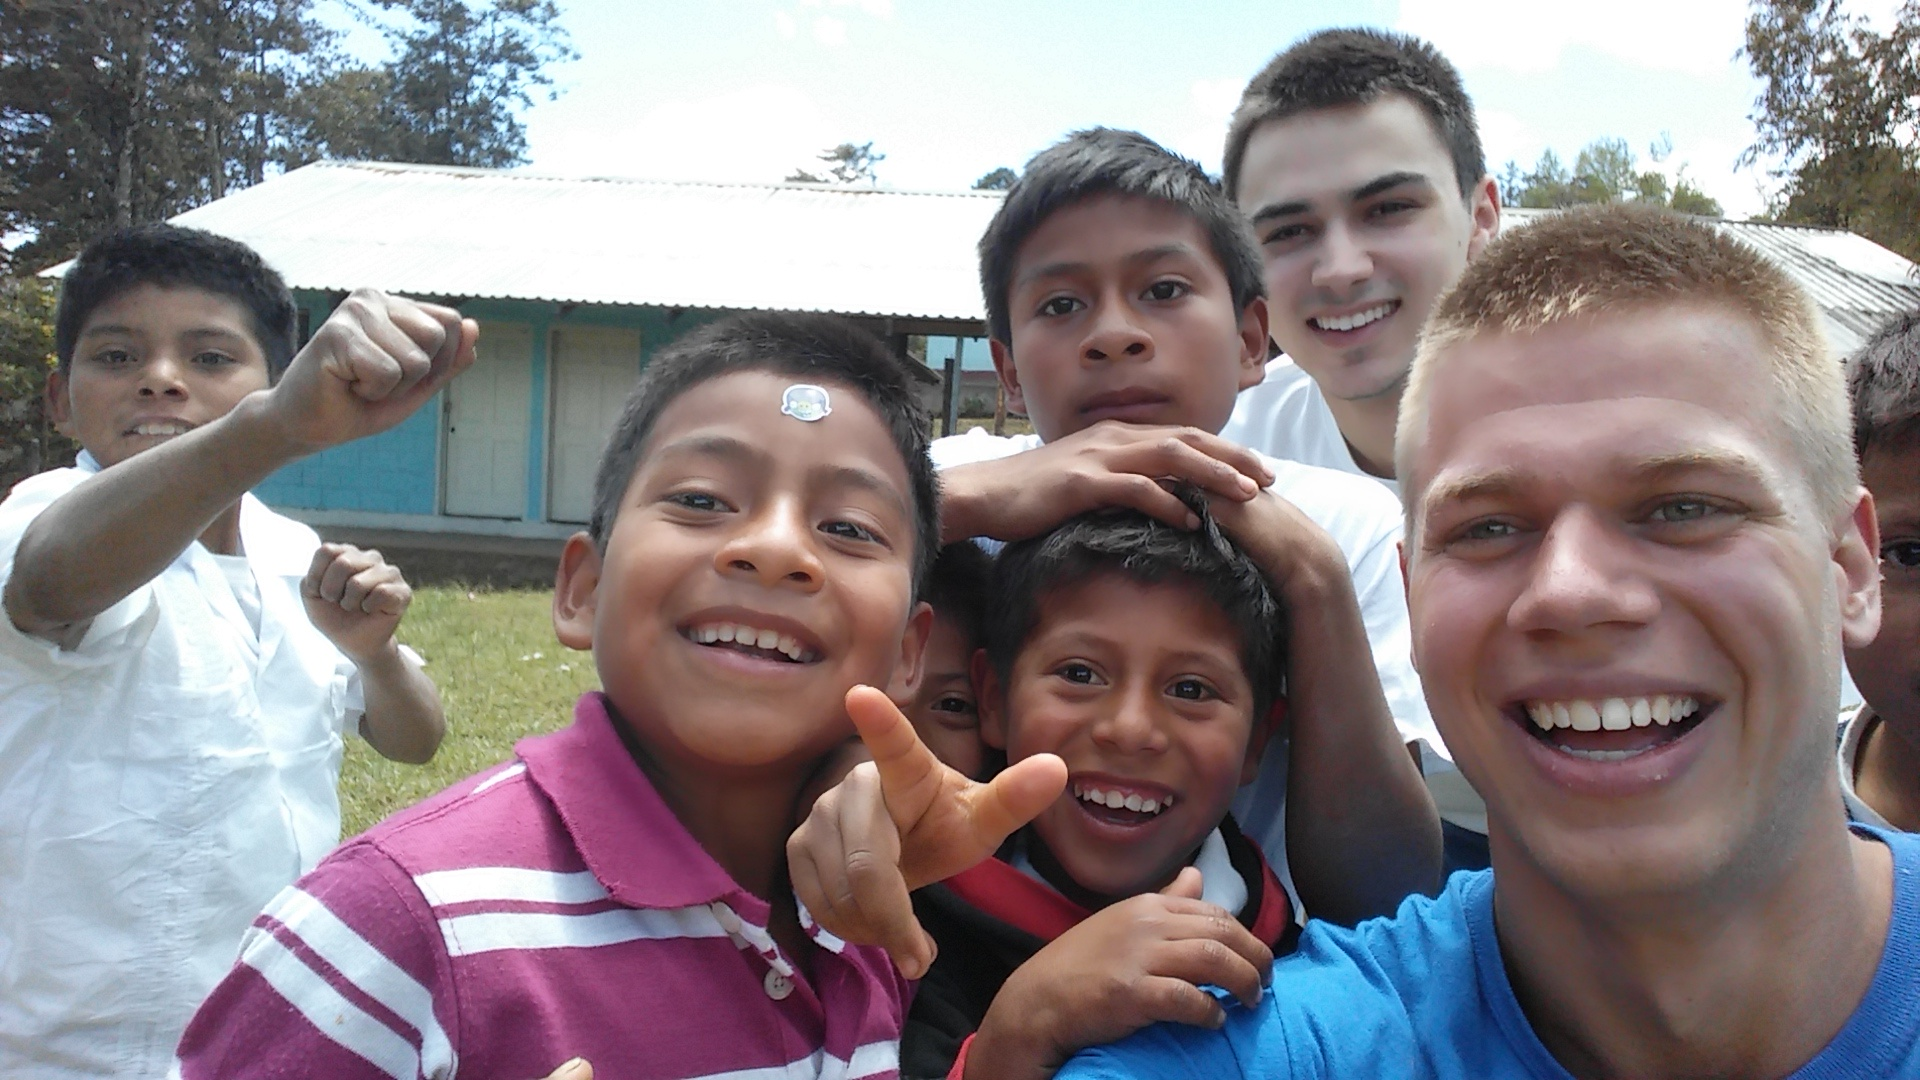 Joe and I with the children of El Cacao